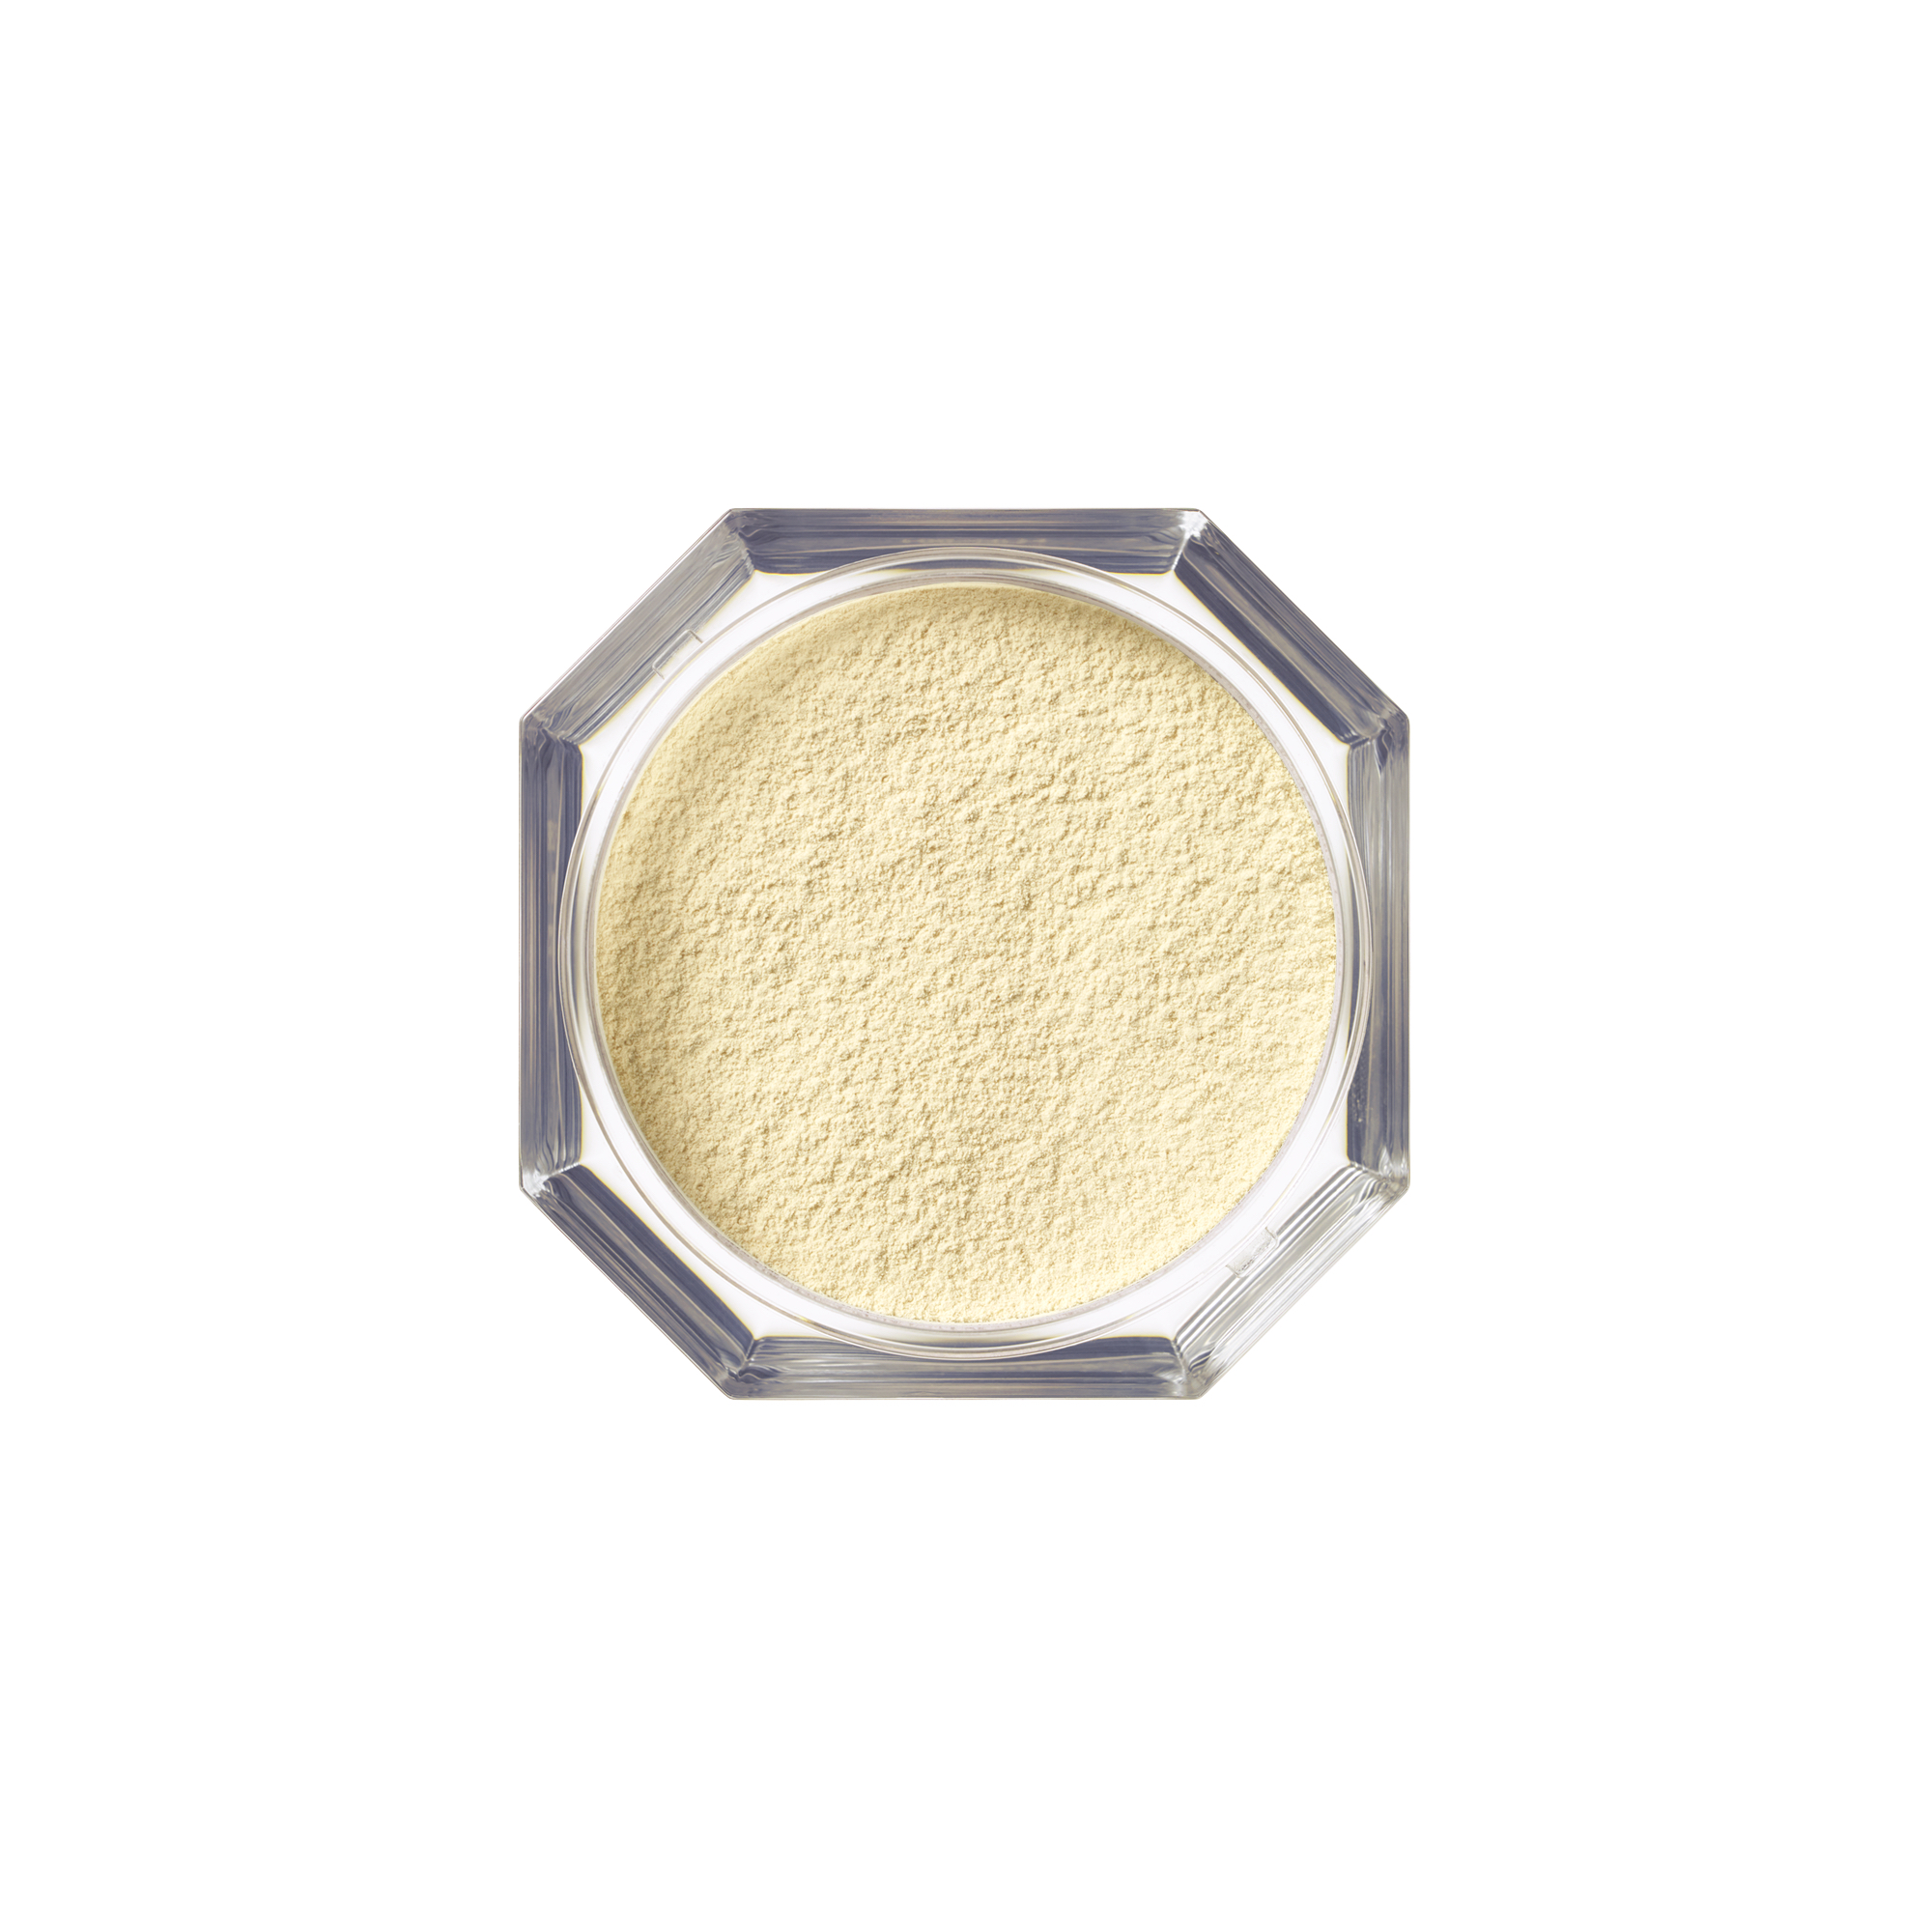 FB Pro Filt'r Instant Retouch Setting Powder - Butter - AED 158